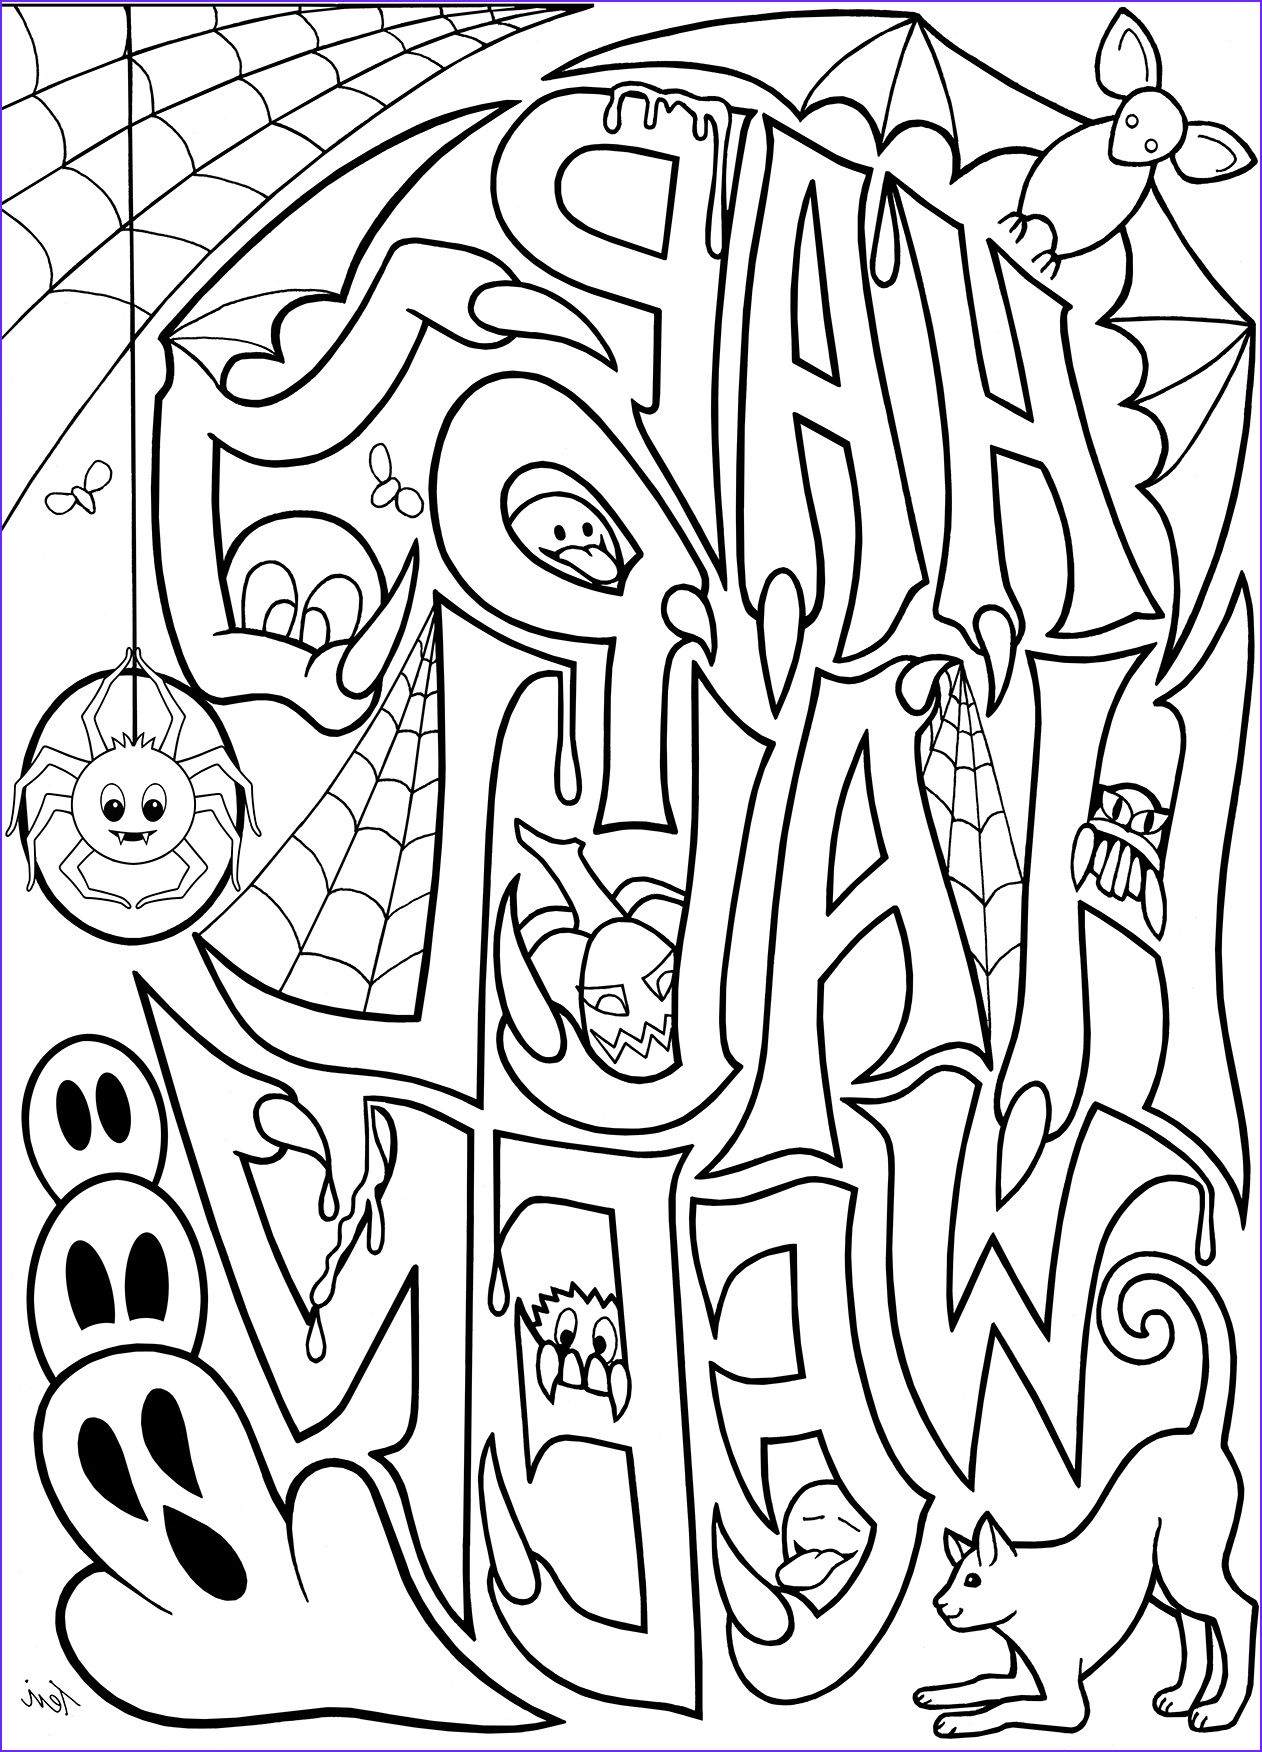 Adult Coloring Books Unique Photos Free Adult Coloring Book Pages Happy Halloween by Blue